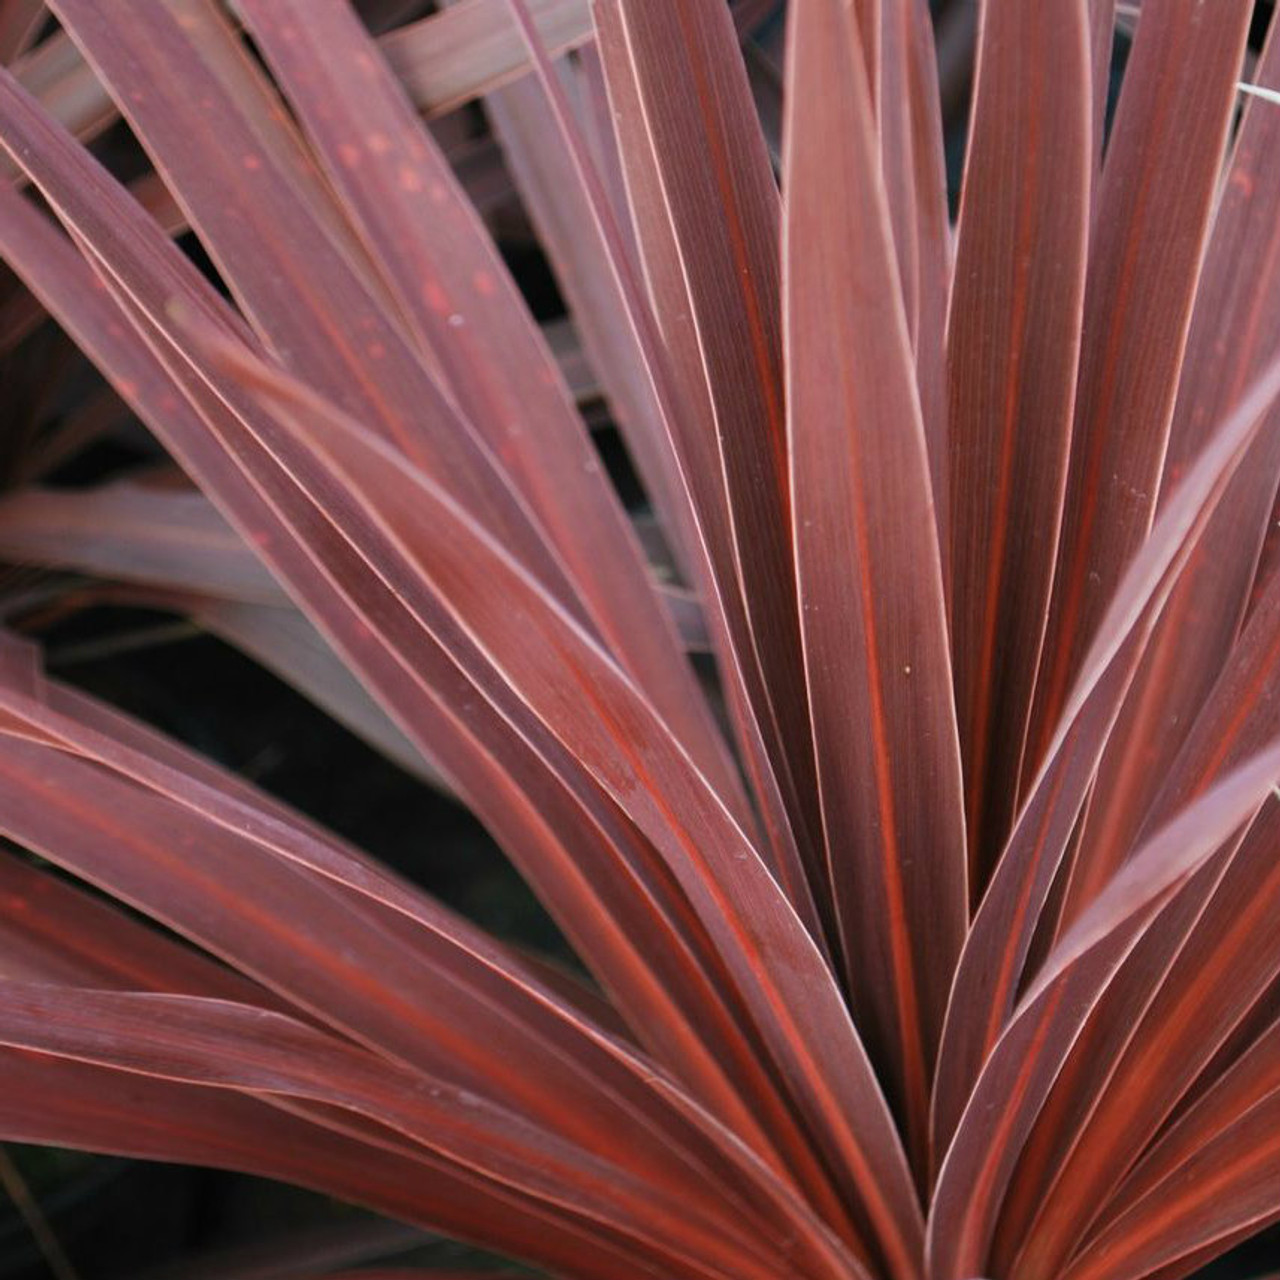 False Dracaena Red Star on red bonsai plant, red fittonia plant, red draceane, red dieffenbachia plant, red zinnia plant, cordyline plant, red pothos plant, red calibrachoa plant, red spathiphyllum plant, red ferns plant, red peperomia plant, red caladium plant, red echeveria plant, red dracaena marginata, red edged dracaena, red aphelandra plant, red clivia plant, red sedum plant, red begonia plant, red sansevieria plant,